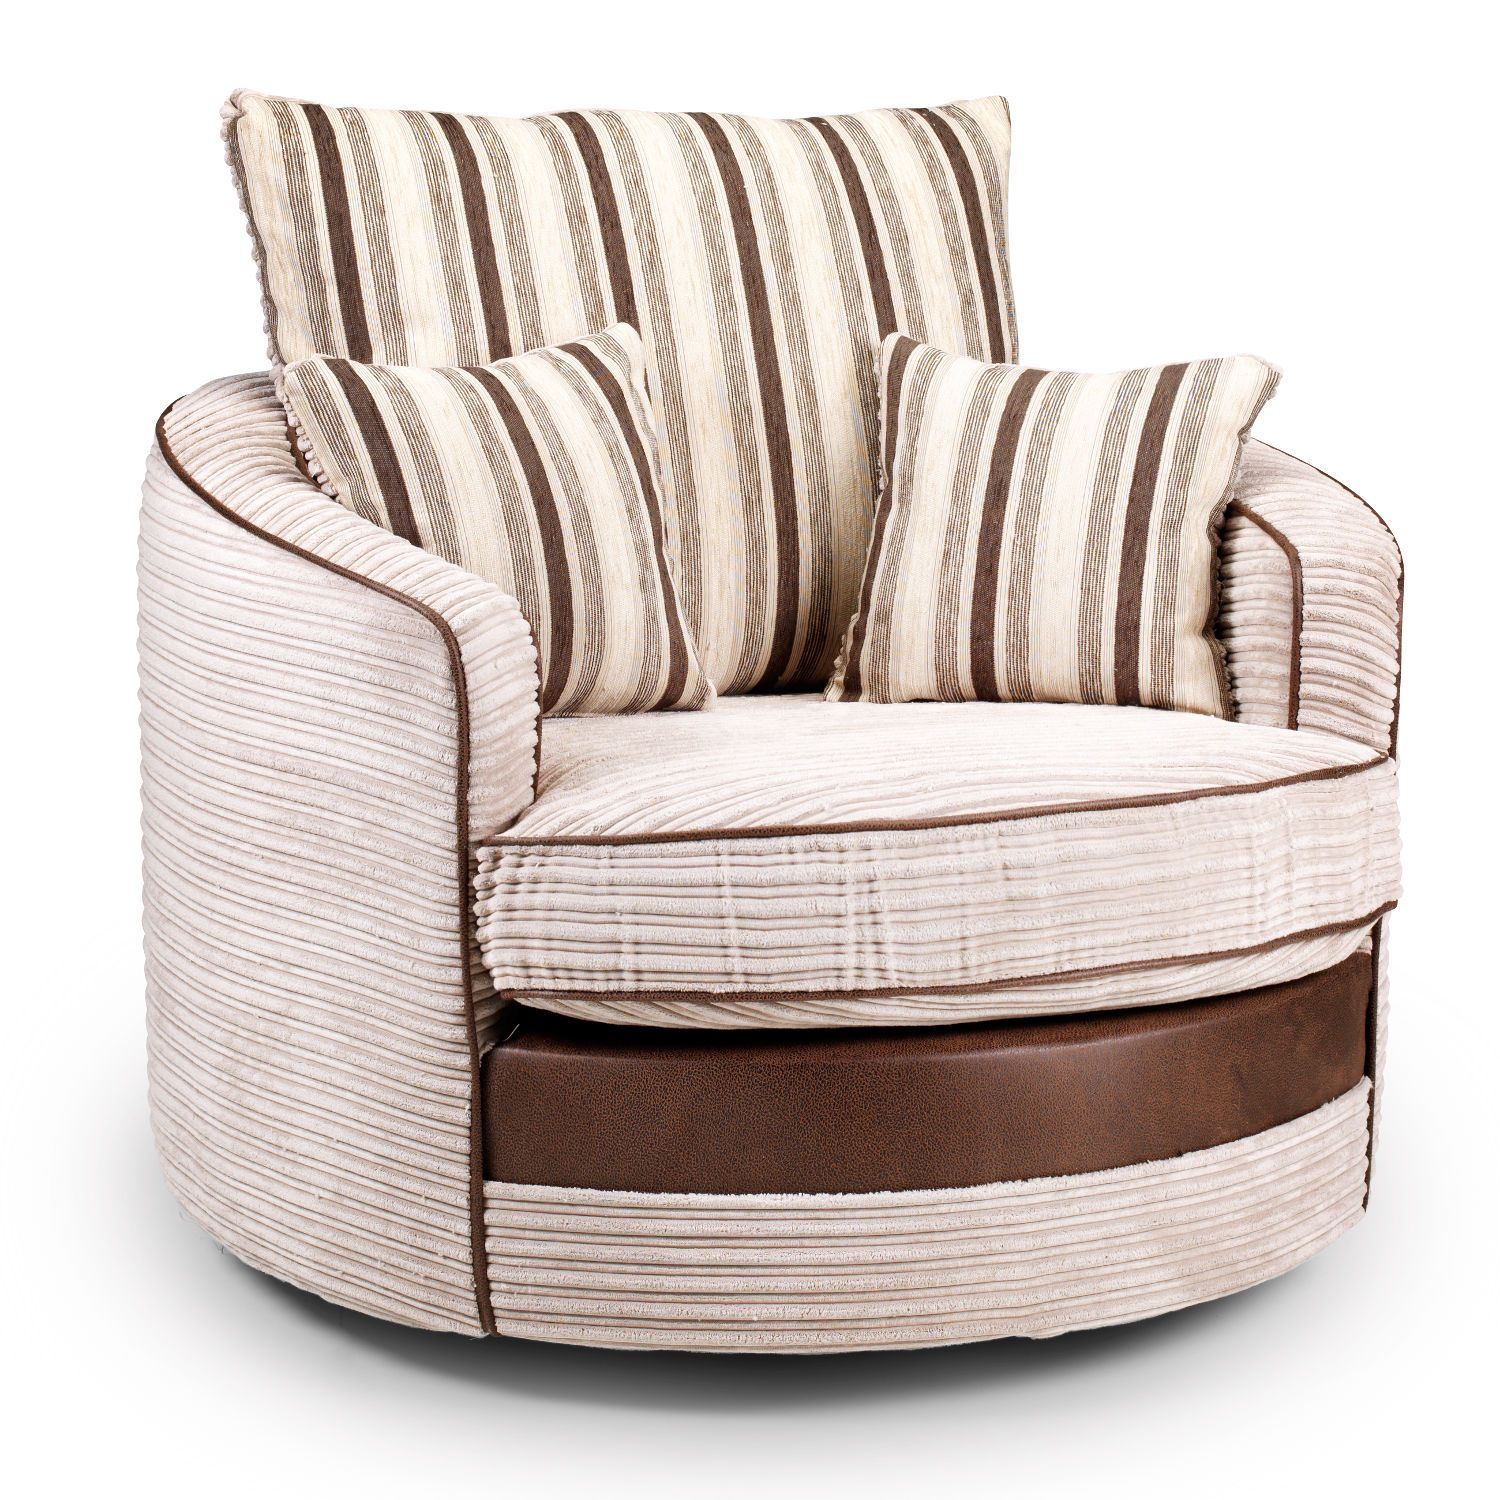 armchairs for sale | armchairs | armchairs cheap ...